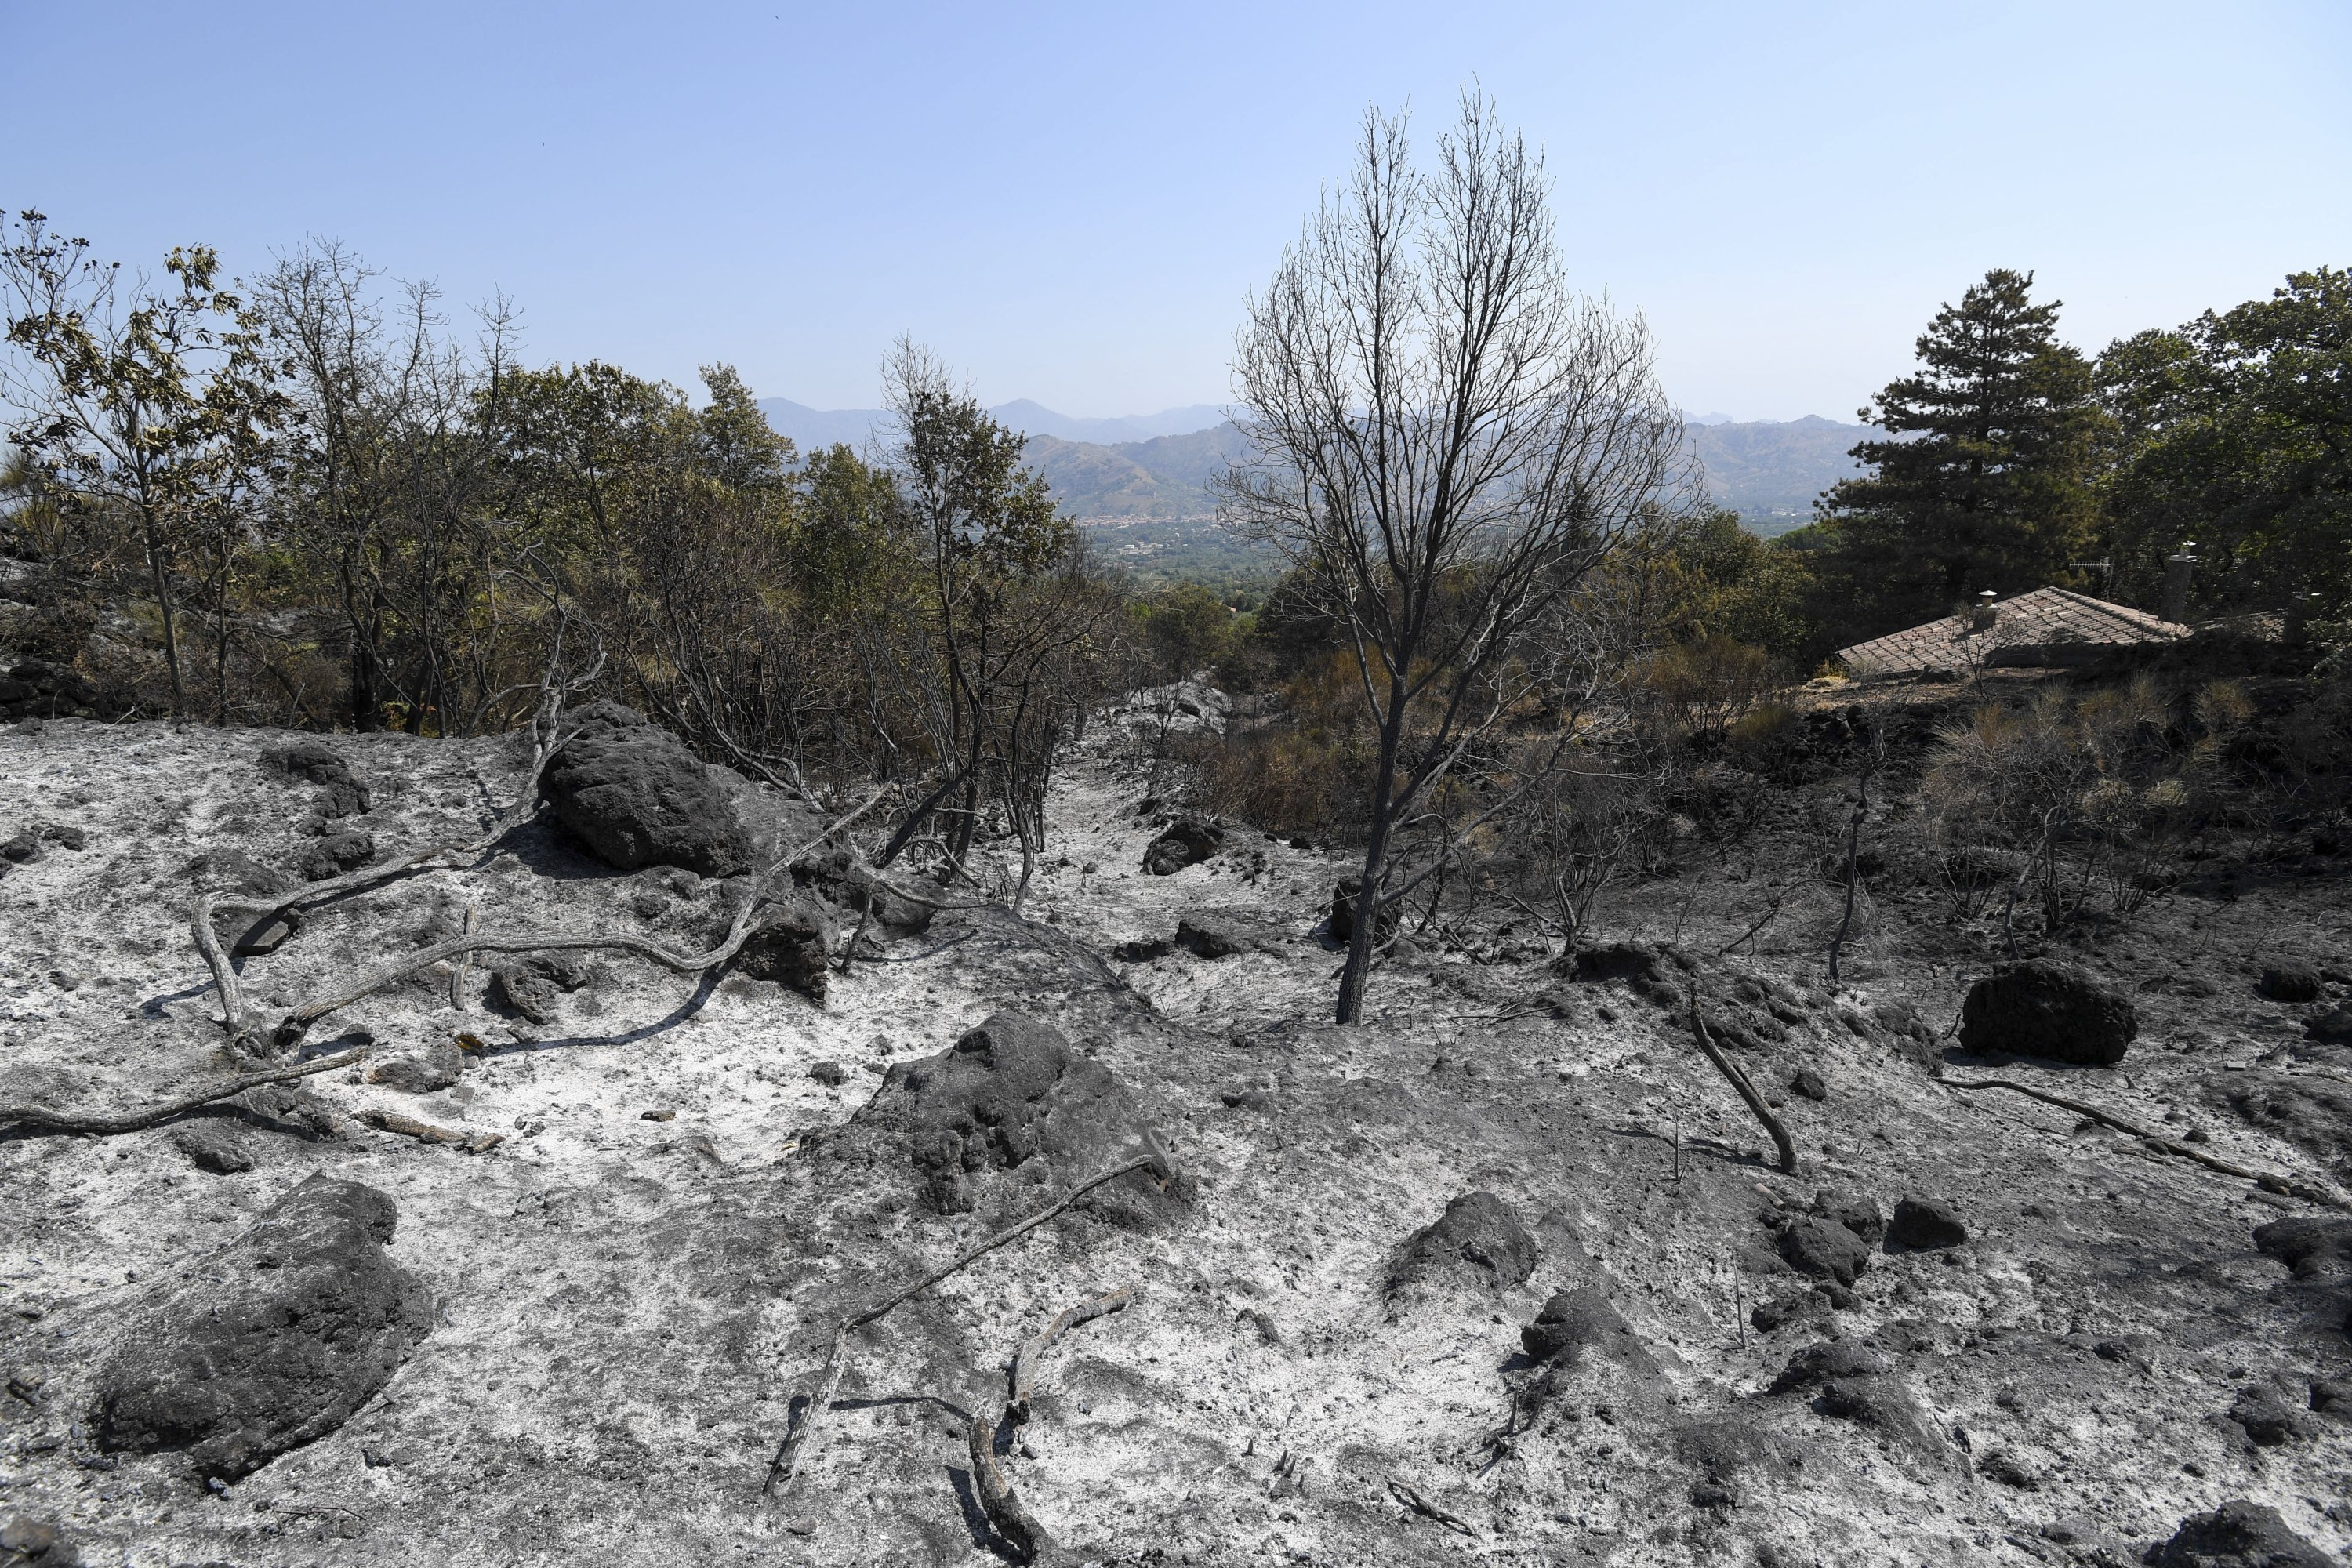 A view of a burnt forest, in Linguaglossa, on the slopes of Mount Etna, near Catania, Sicily, Italy, Aug. 13, 2021. (AP Photo)